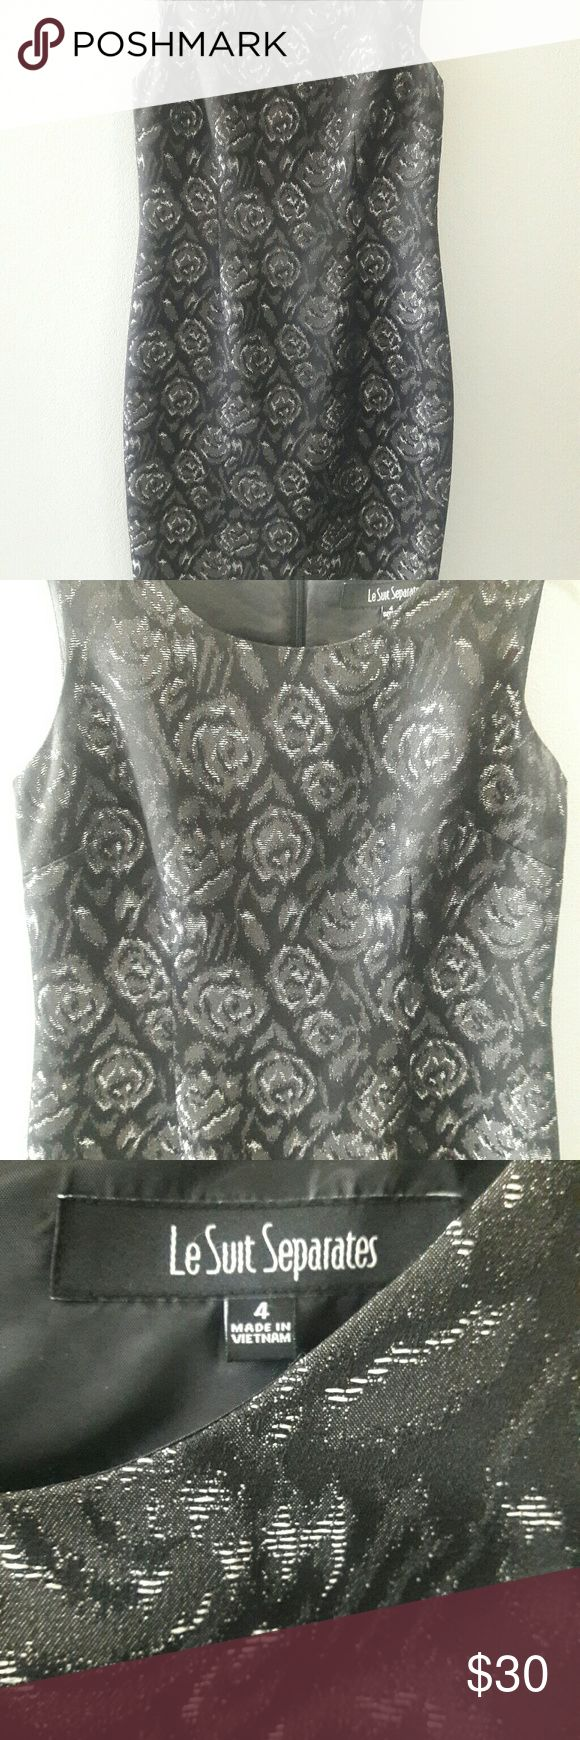 """Le Suit Separates Black-Silver-Gray Floral Print 4 Worn once.  Good condition. Sheath and sleeveless. Sleeve Style. Regular size type. Knee-length. Floral pattern. Measurements: Chest 17"""" Length 37 1/2"""". le suit separates Dresses Midi"""